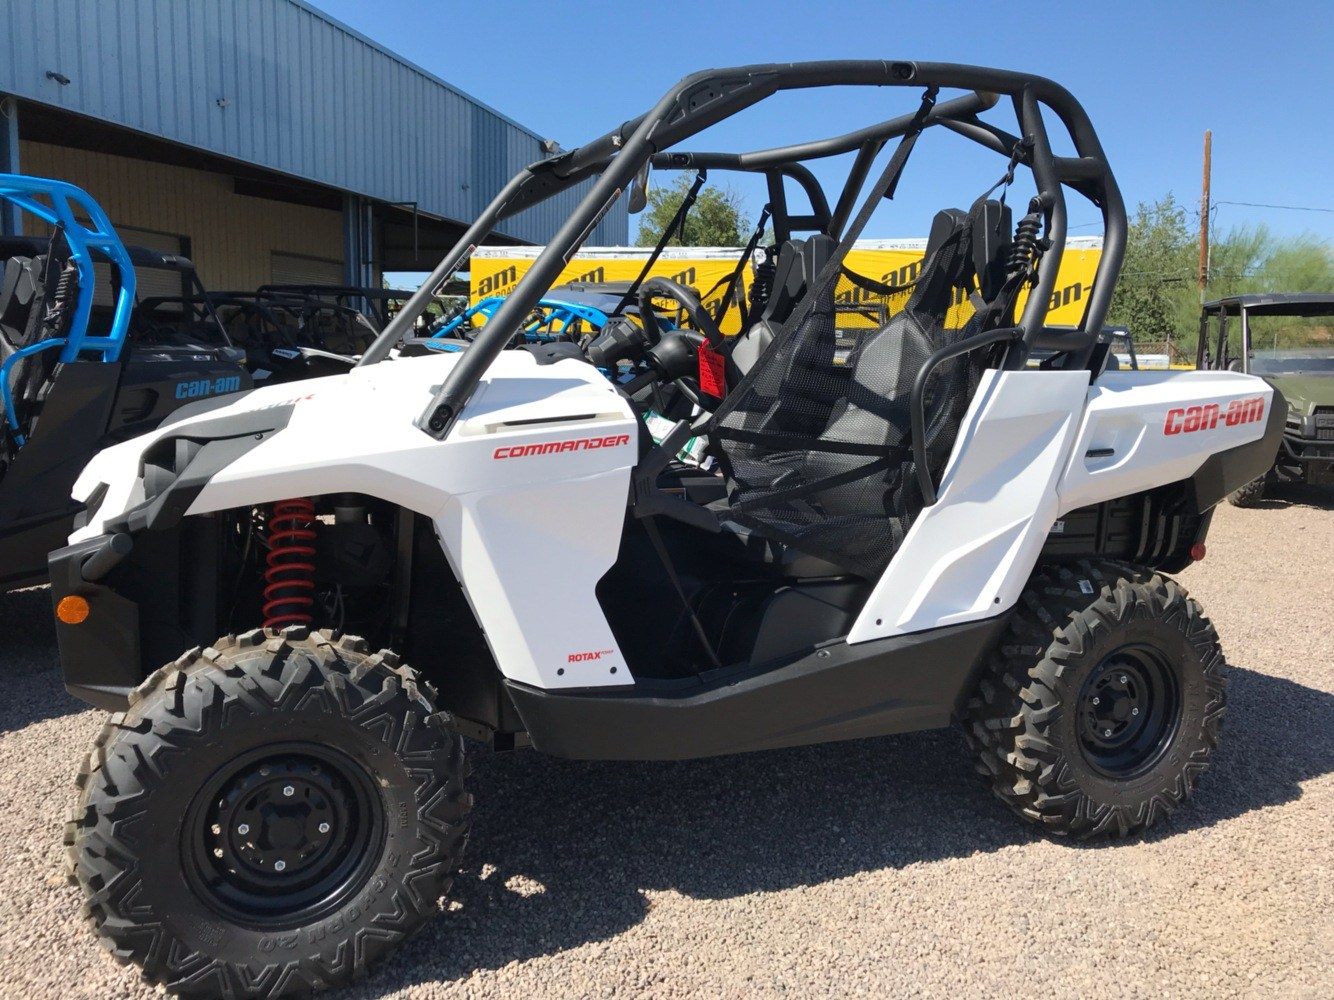 2019 Can-Am Commander 800R in Safford, Arizona - Photo 2